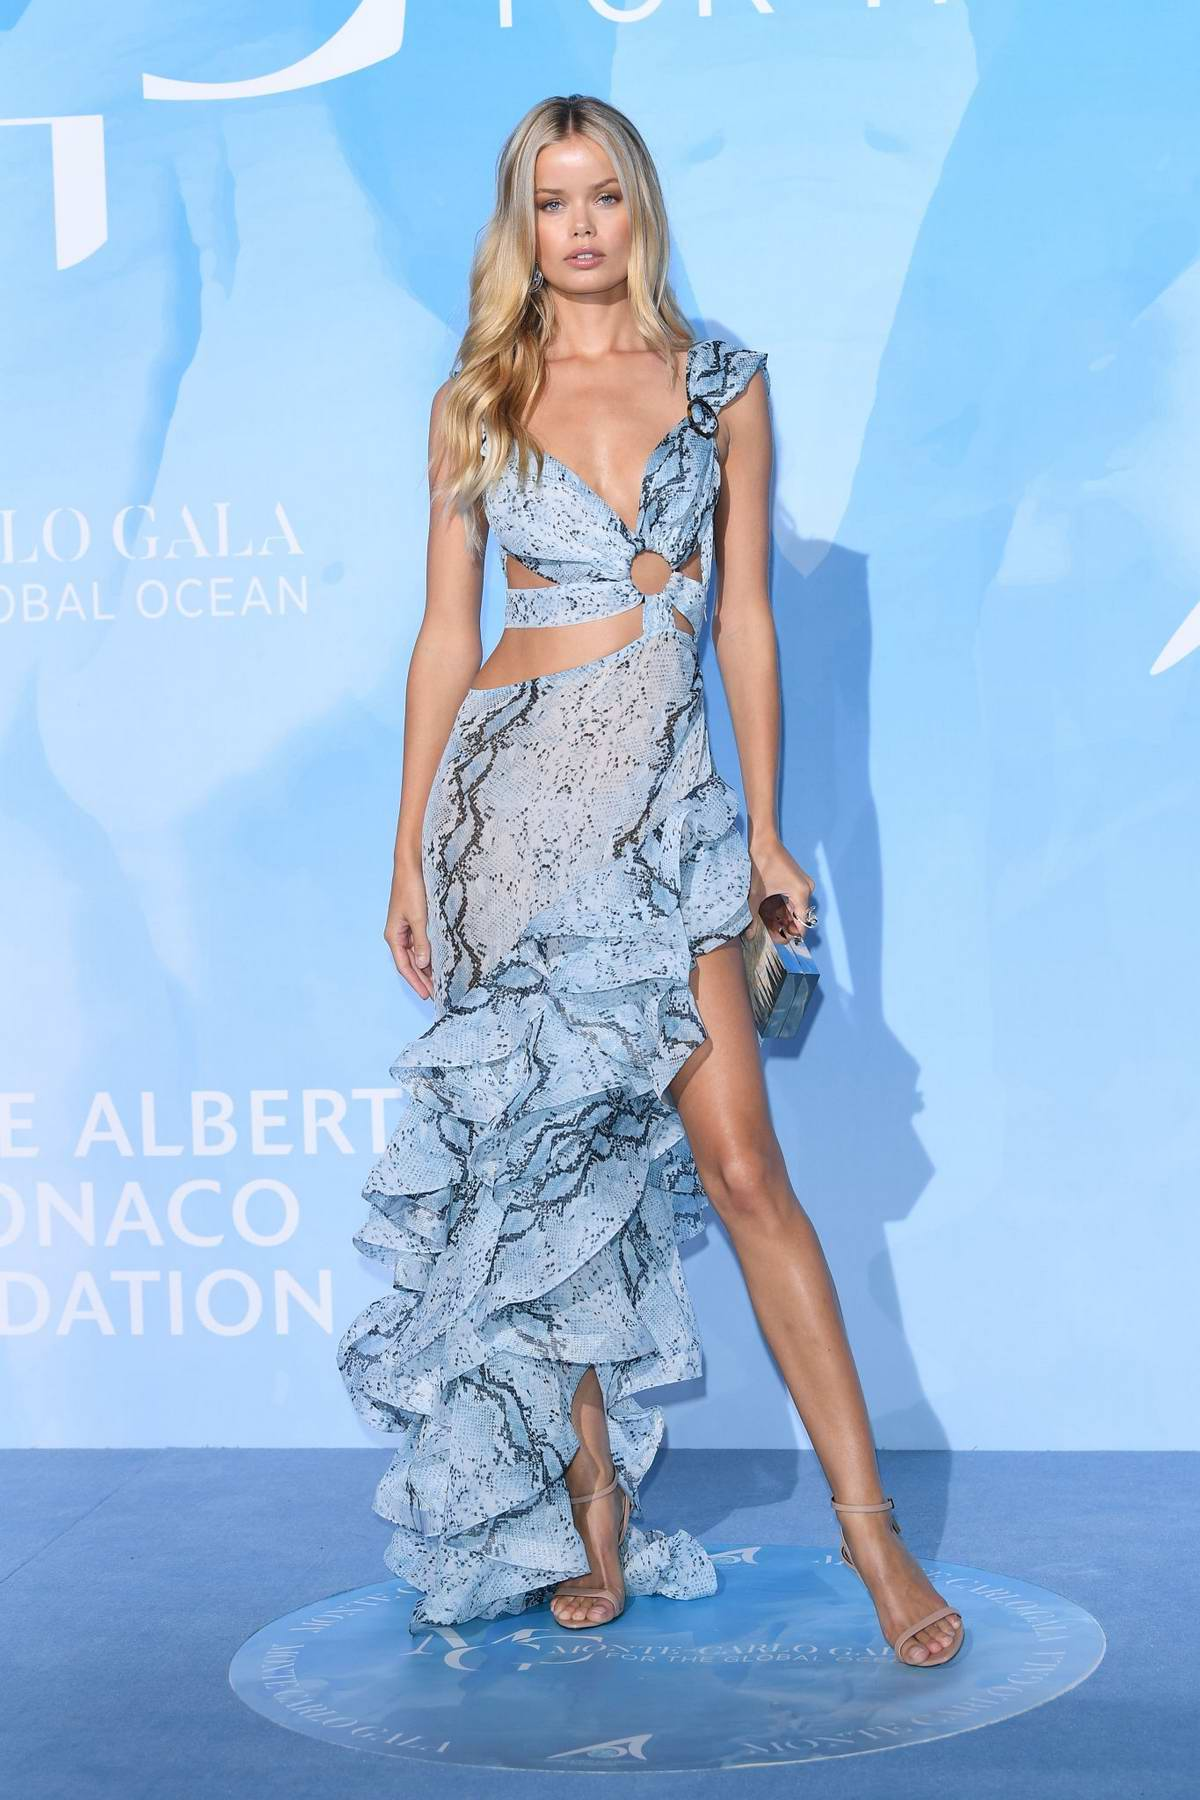 Frida Aasen attends the Gala for the Global Ocean in Monte Carlo, Monaco